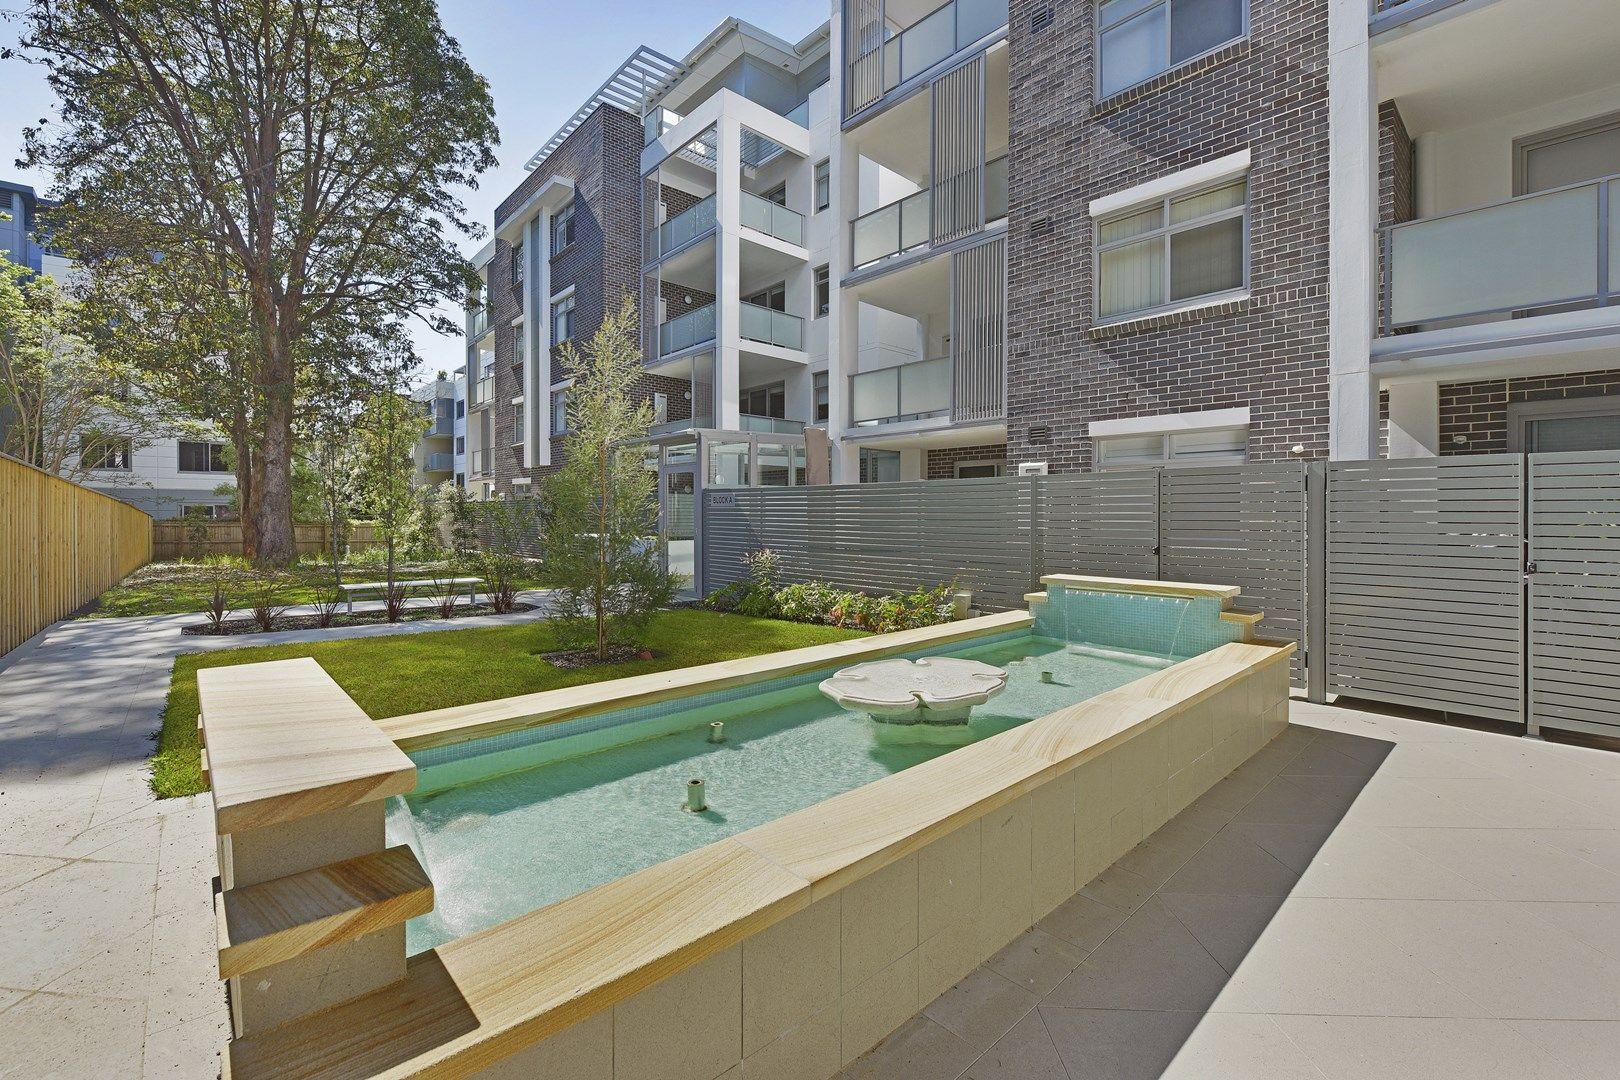 5/212-216 Mona Vale Road, St Ives NSW 2075, Image 0